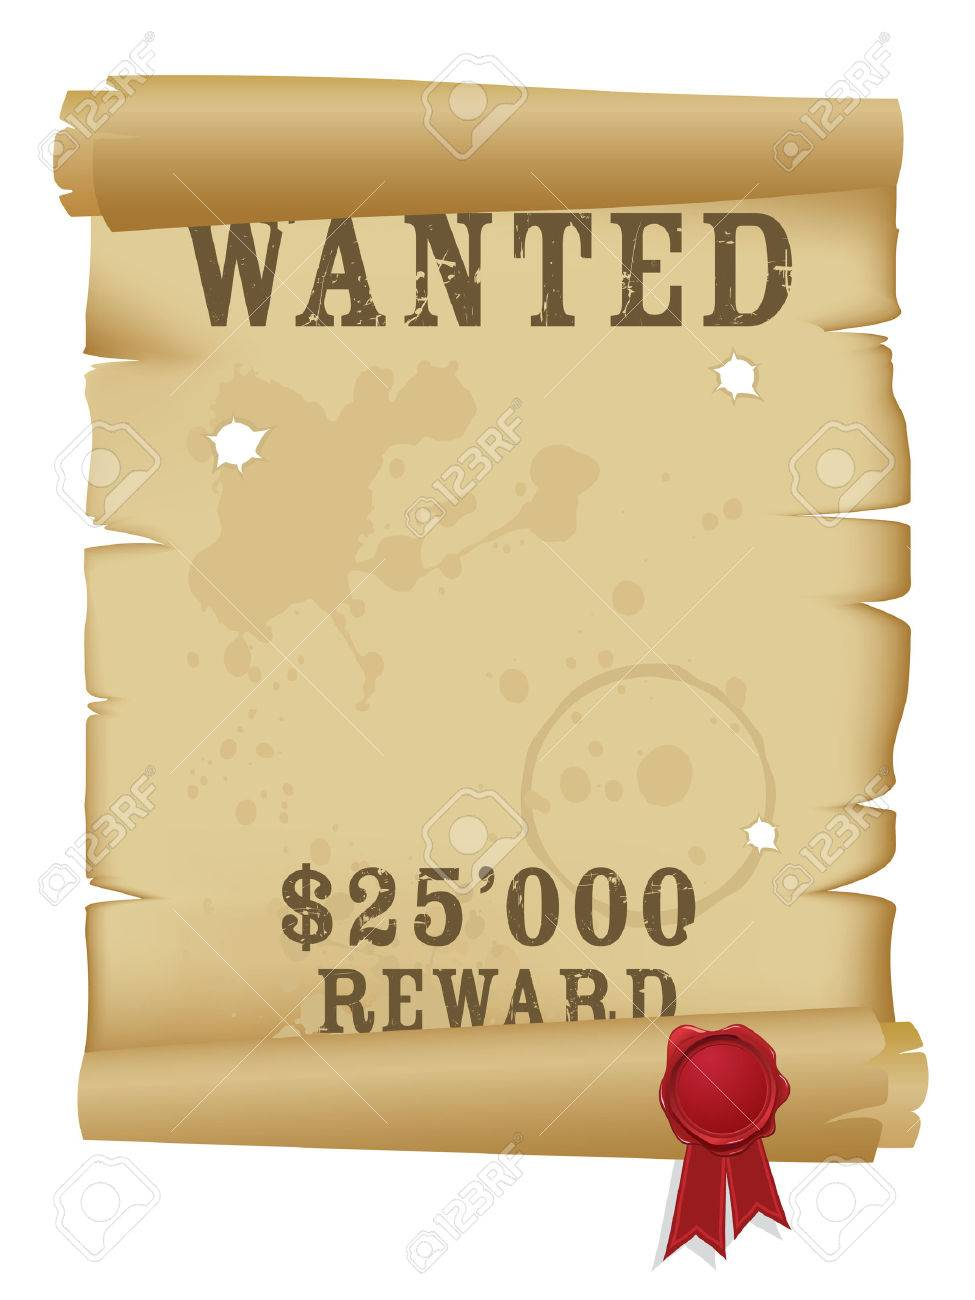 Doc430632 Wanted Poster Template Microsoft Word 19 FREE – Wanted Poster Letters